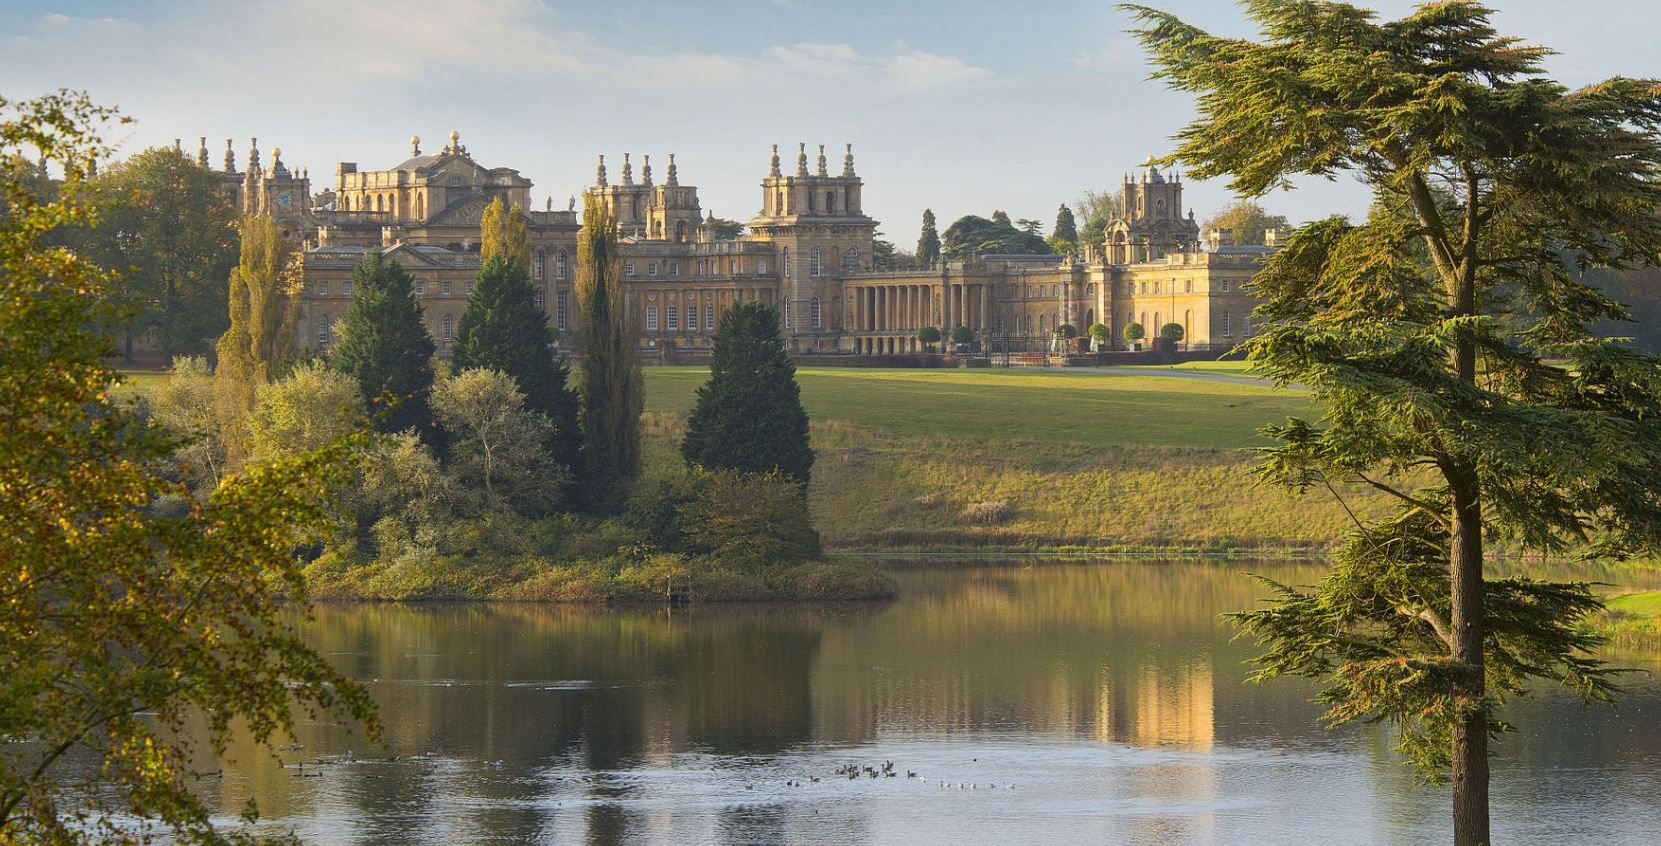 Magnificent Mansions - Blenheim Palace